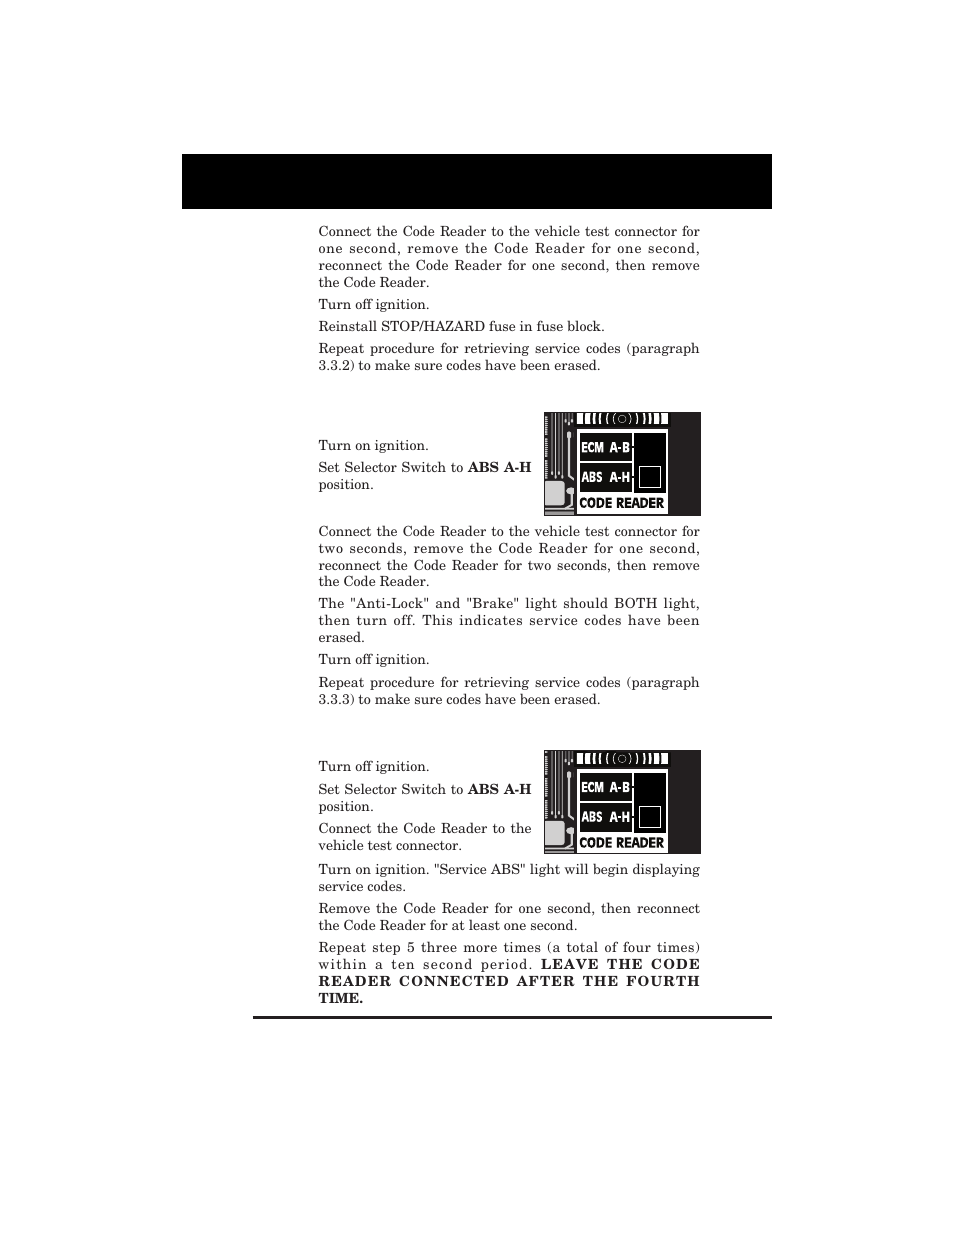 Retrieving Abs Codes Equus 3123 Gm Code Reader 1982 1995 Fuse Box Connectors User Manual Page 33 52